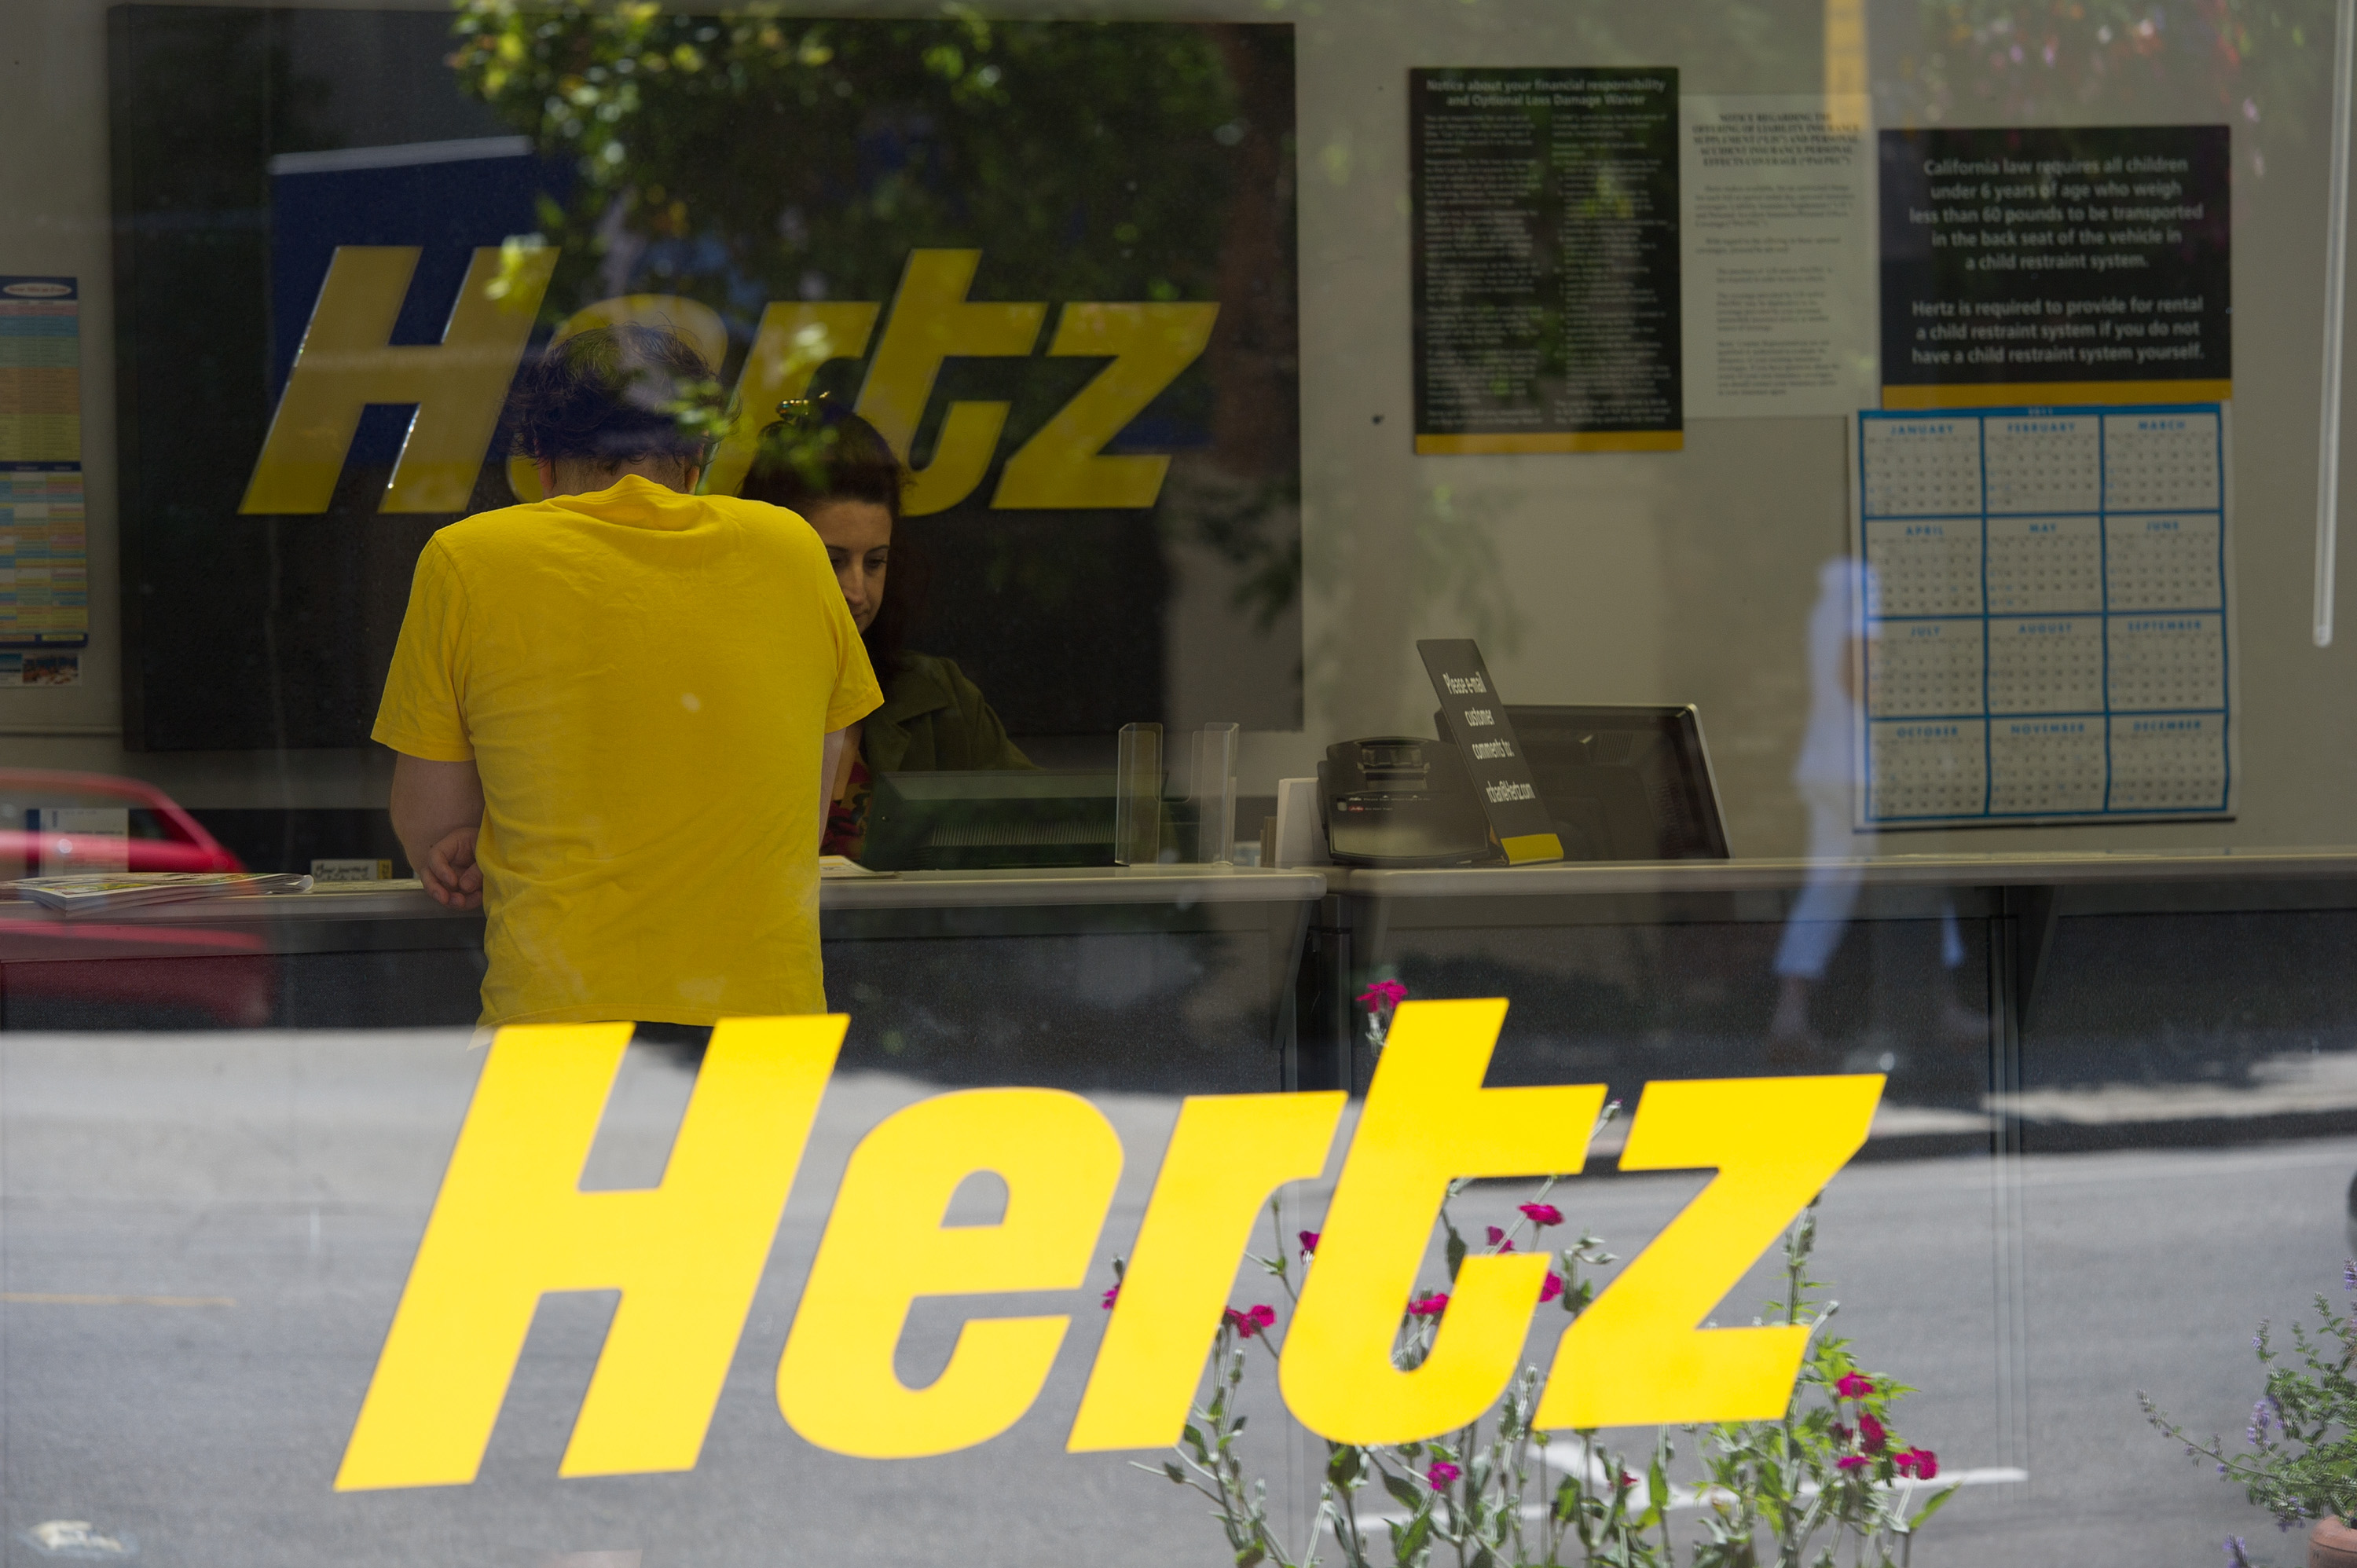 Hertz Global Holdings Inc Announce Earnings